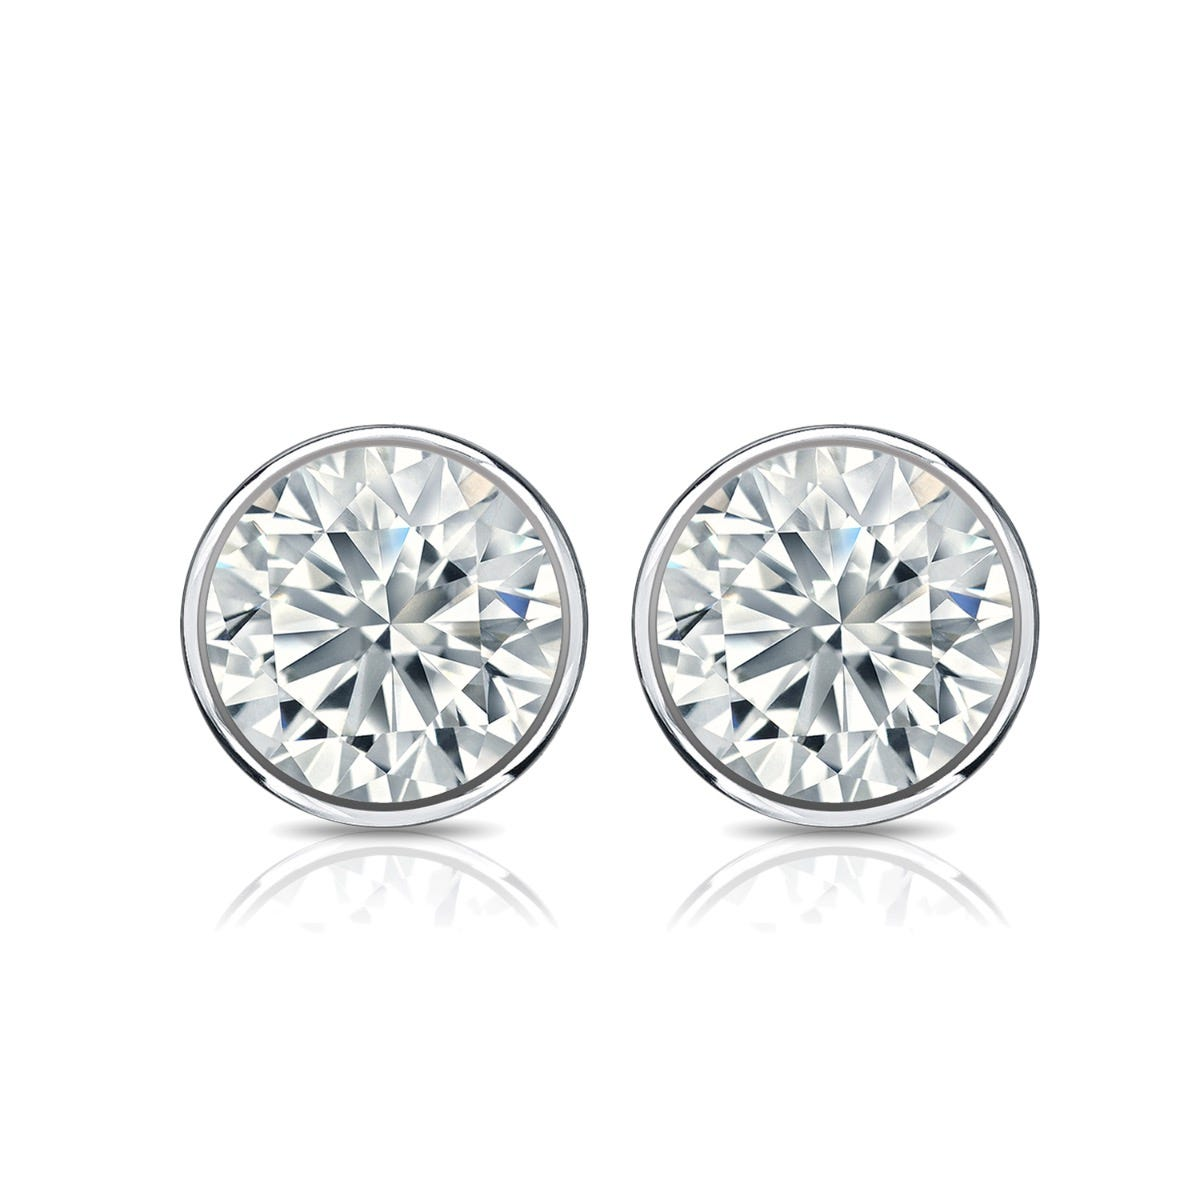 Diamond Round Bezel-Set 1ctw. Solitaire Stud (IJ-I2) Earrings in 10K White Gold